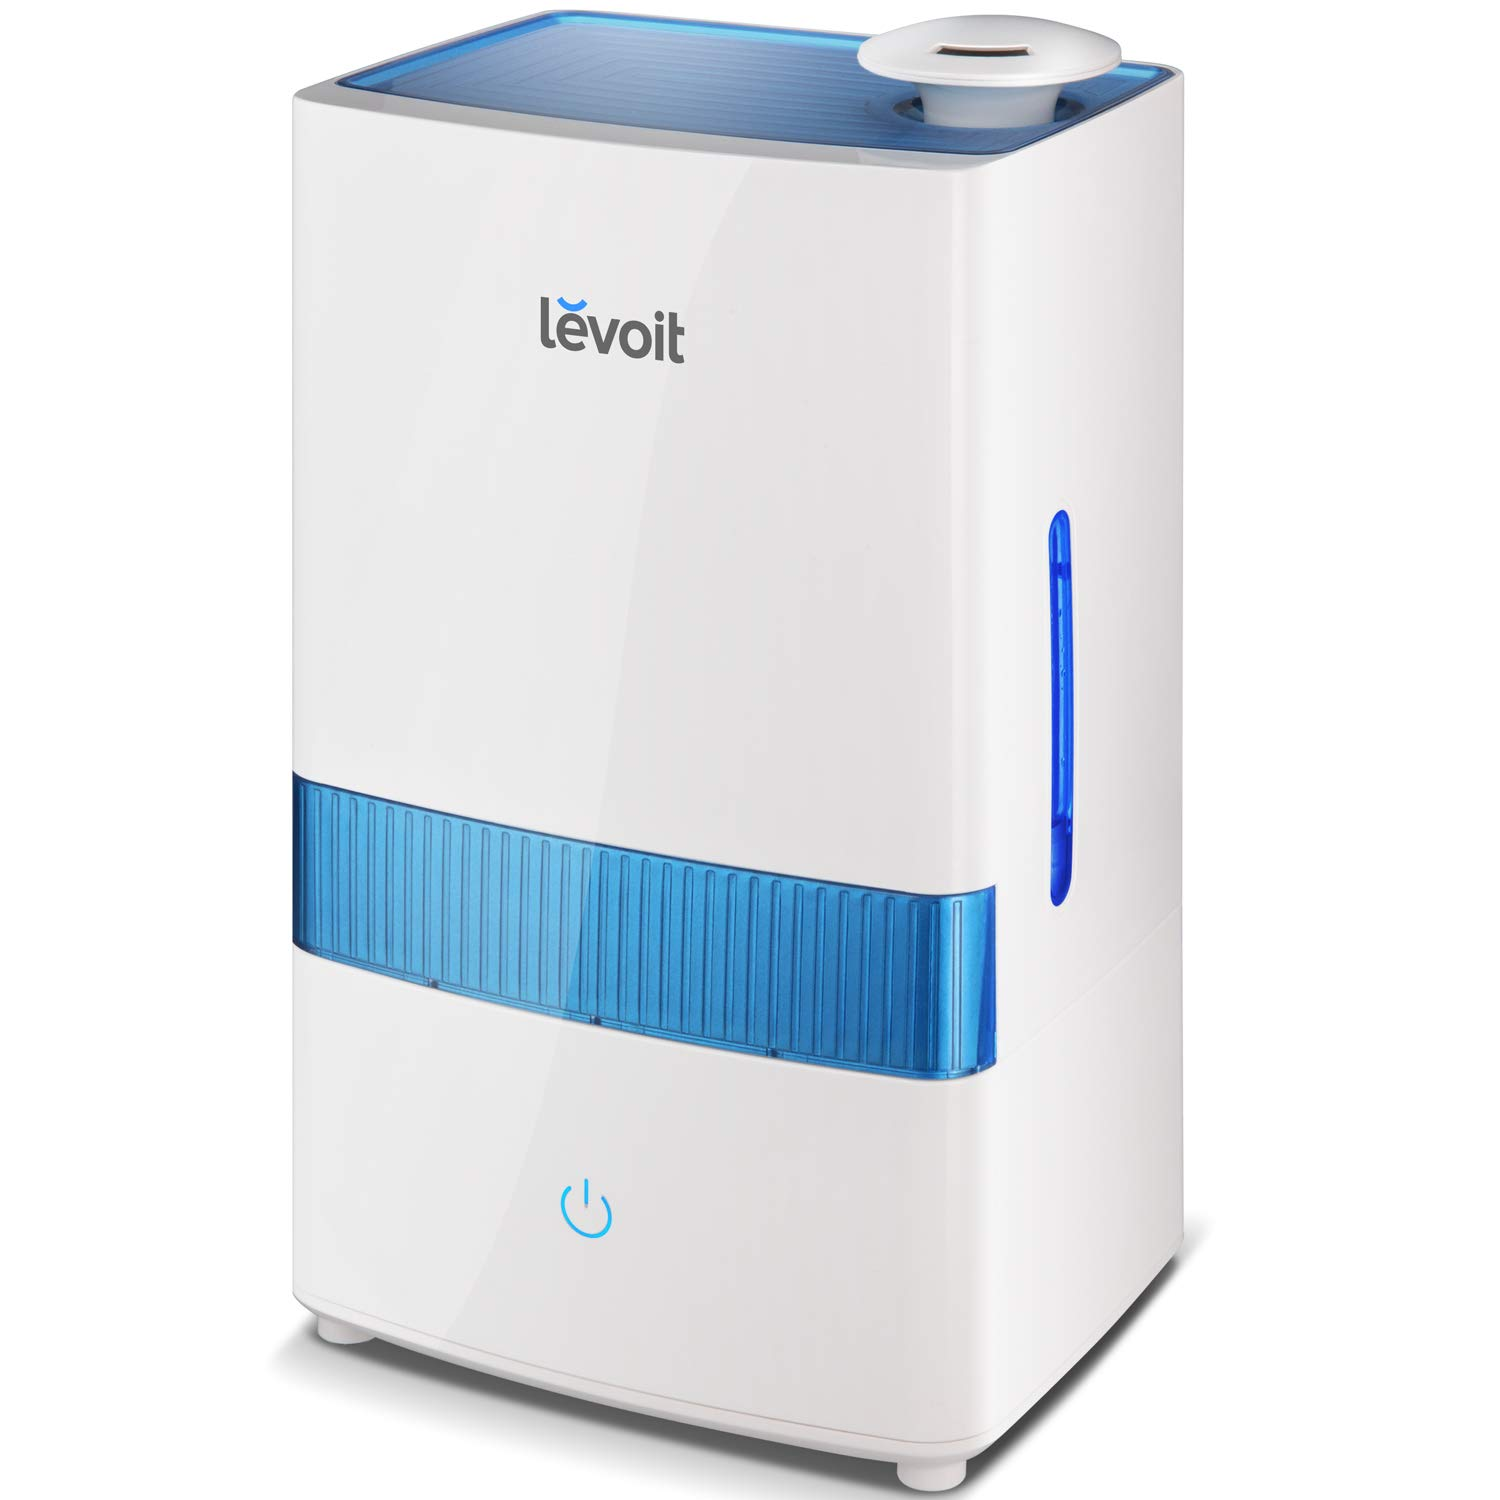 LEVOIT Cool Mist Humidifier for Bedroom, 4.5L Ultrasonic Air Vaporizer Humidifier for Babies, Large Room and Nursery, Essential Oils, Whisper-Quiet, Auto Shutoff, Lasts up to 40 Hours, 2-Year Warranty by LEVOIT